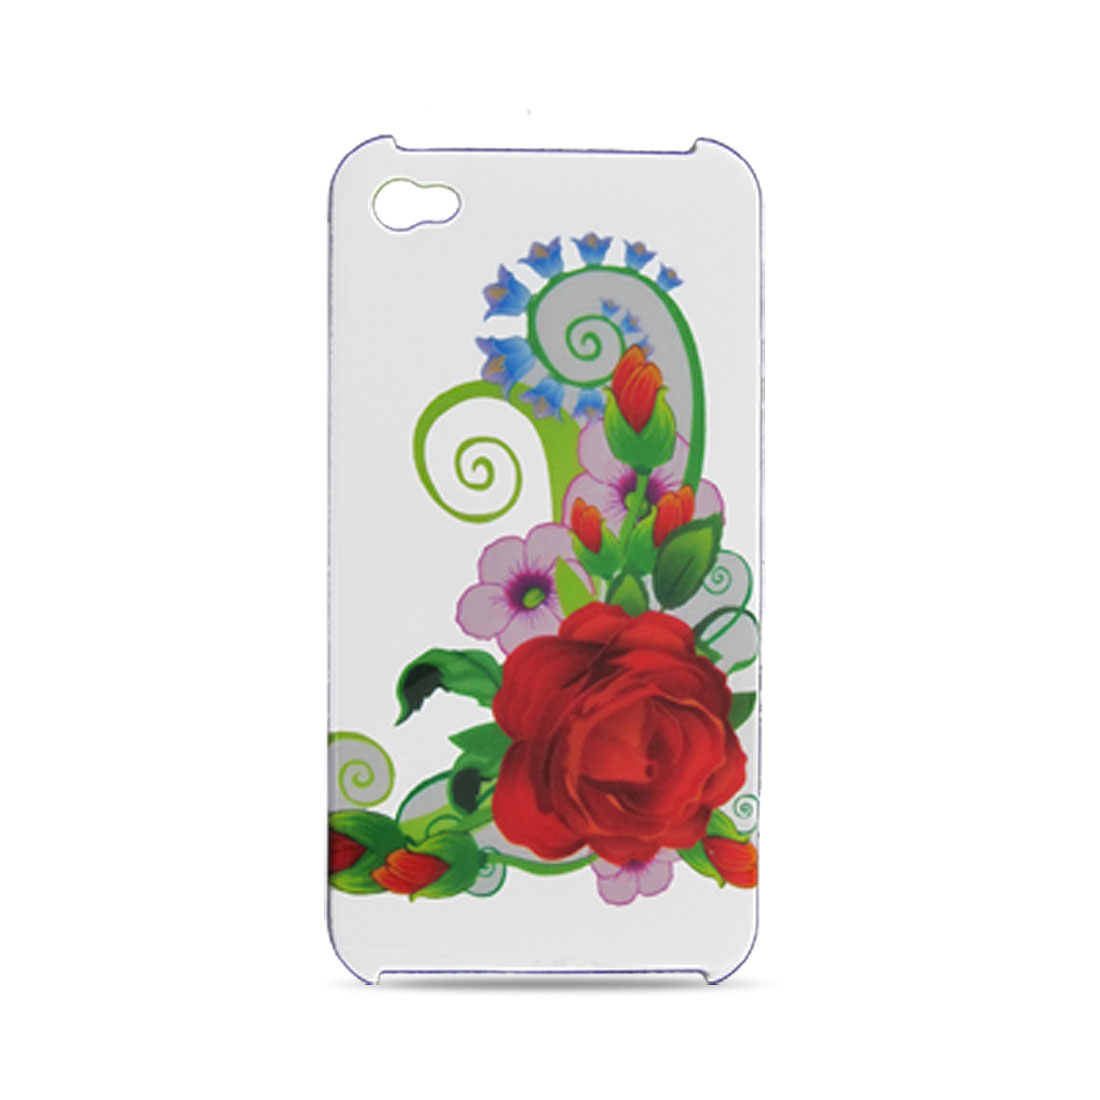 Rose Pattern Plastic Case + Anti-dust Plug for iPhone 4 4G